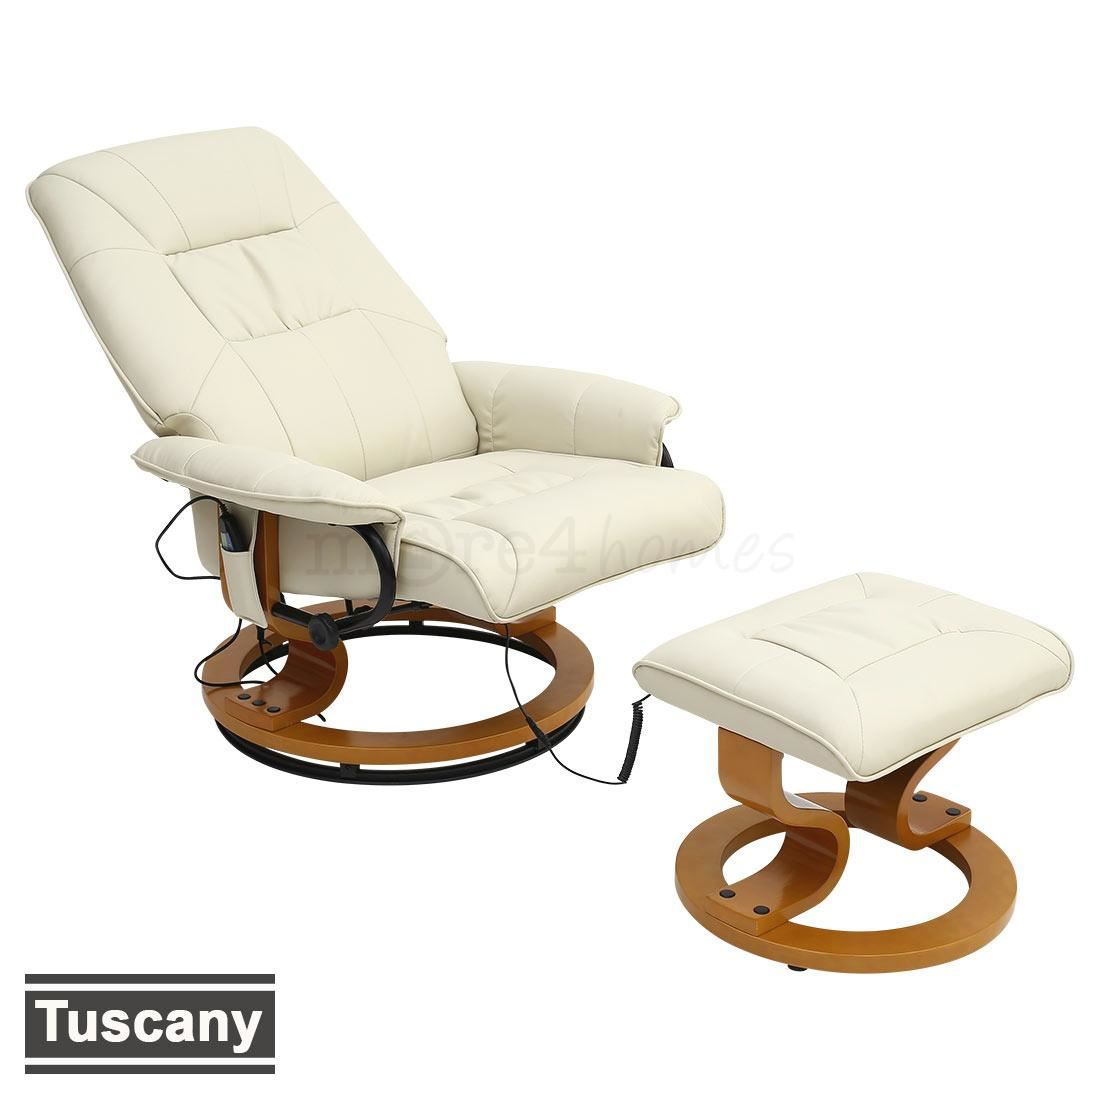 leather swivel recliner chair and stool oversized slipcover t cushion tuscany real cream massage w